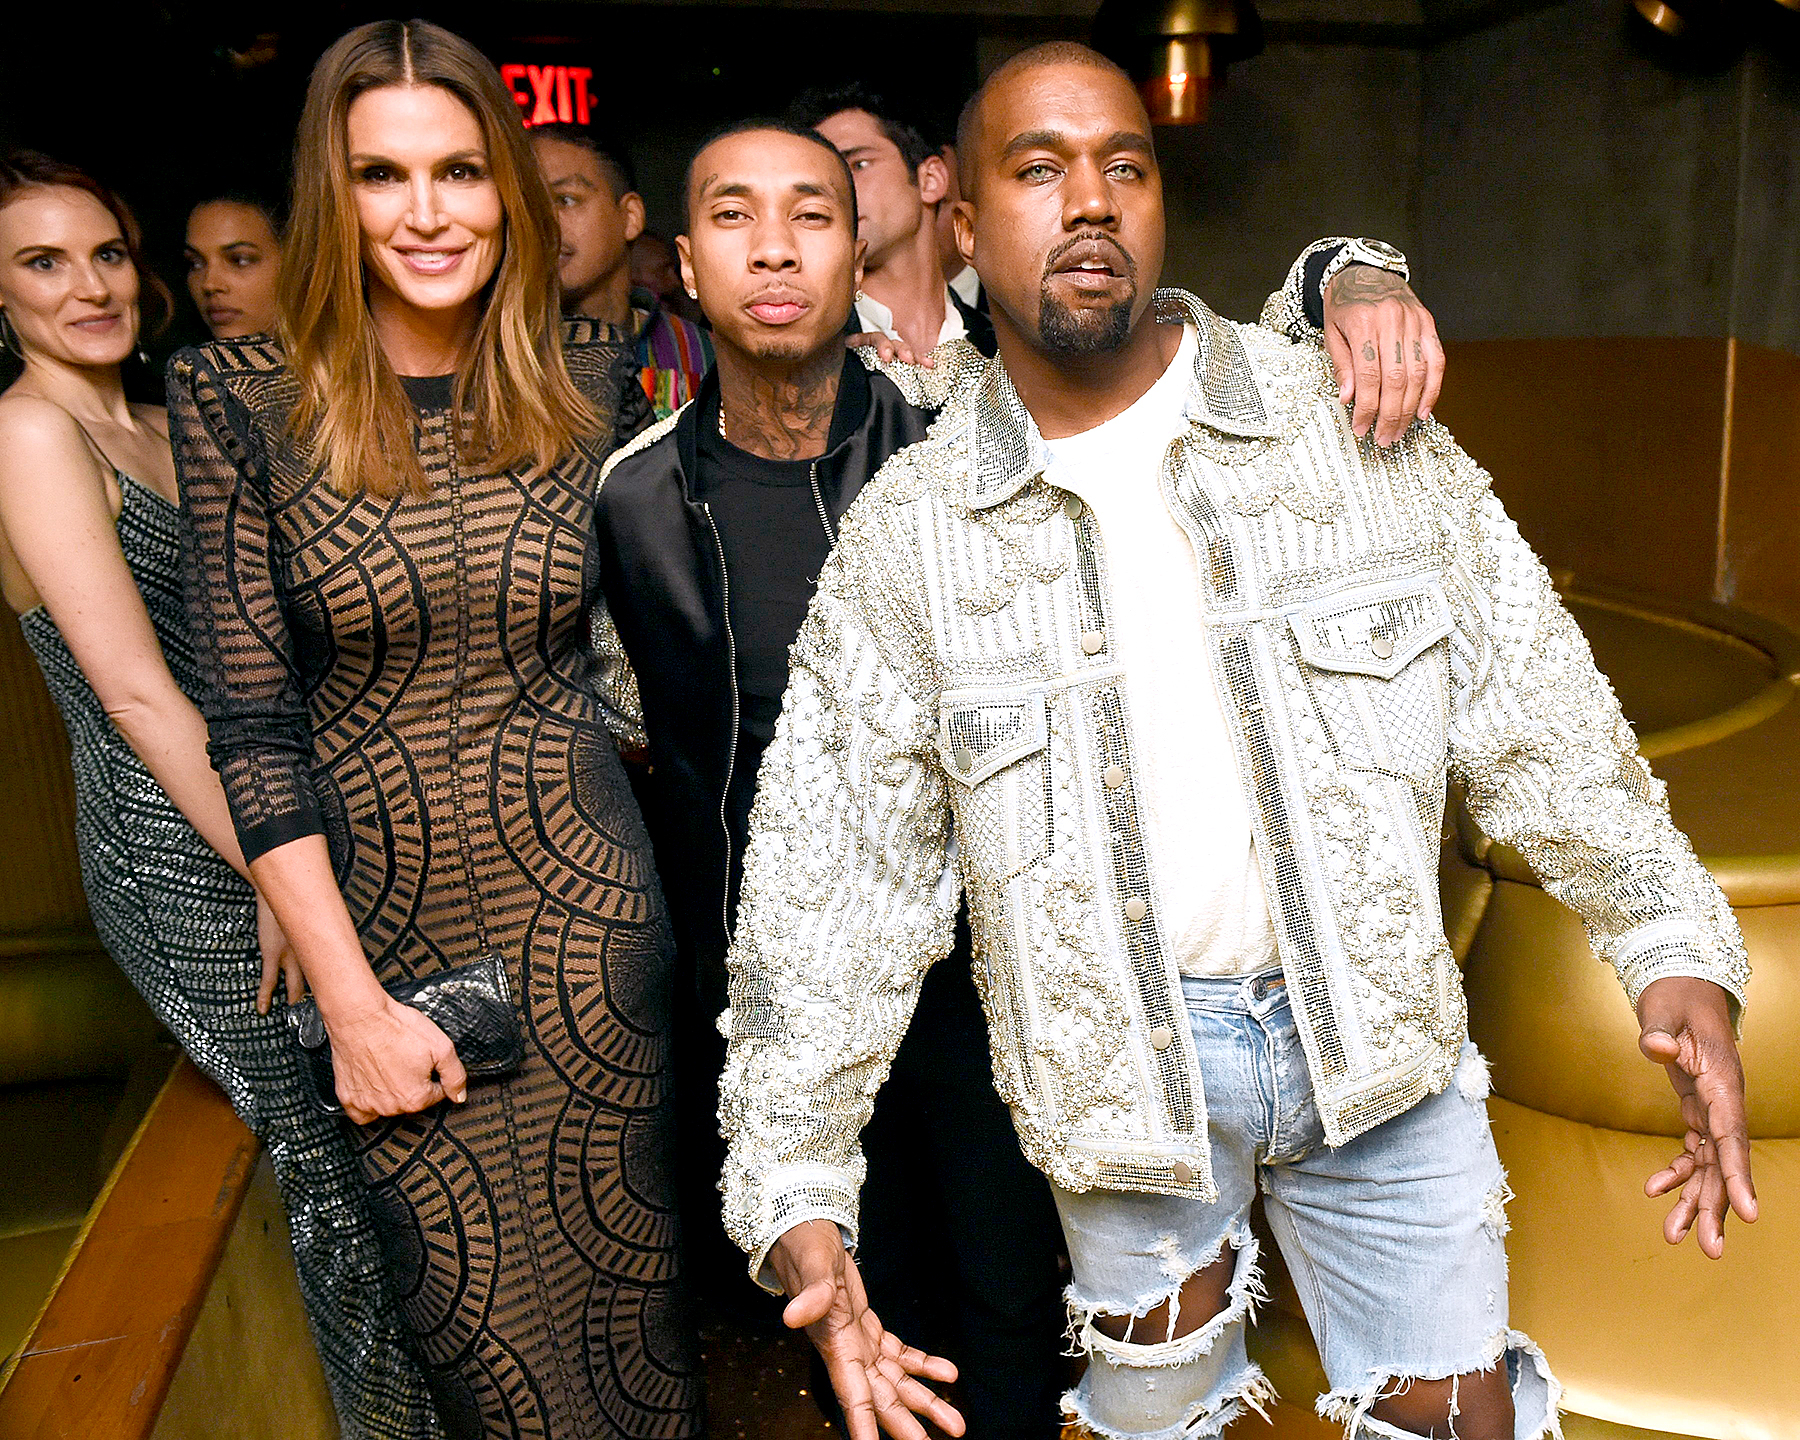 Cindy Crawford, Tyga, and Kanye West